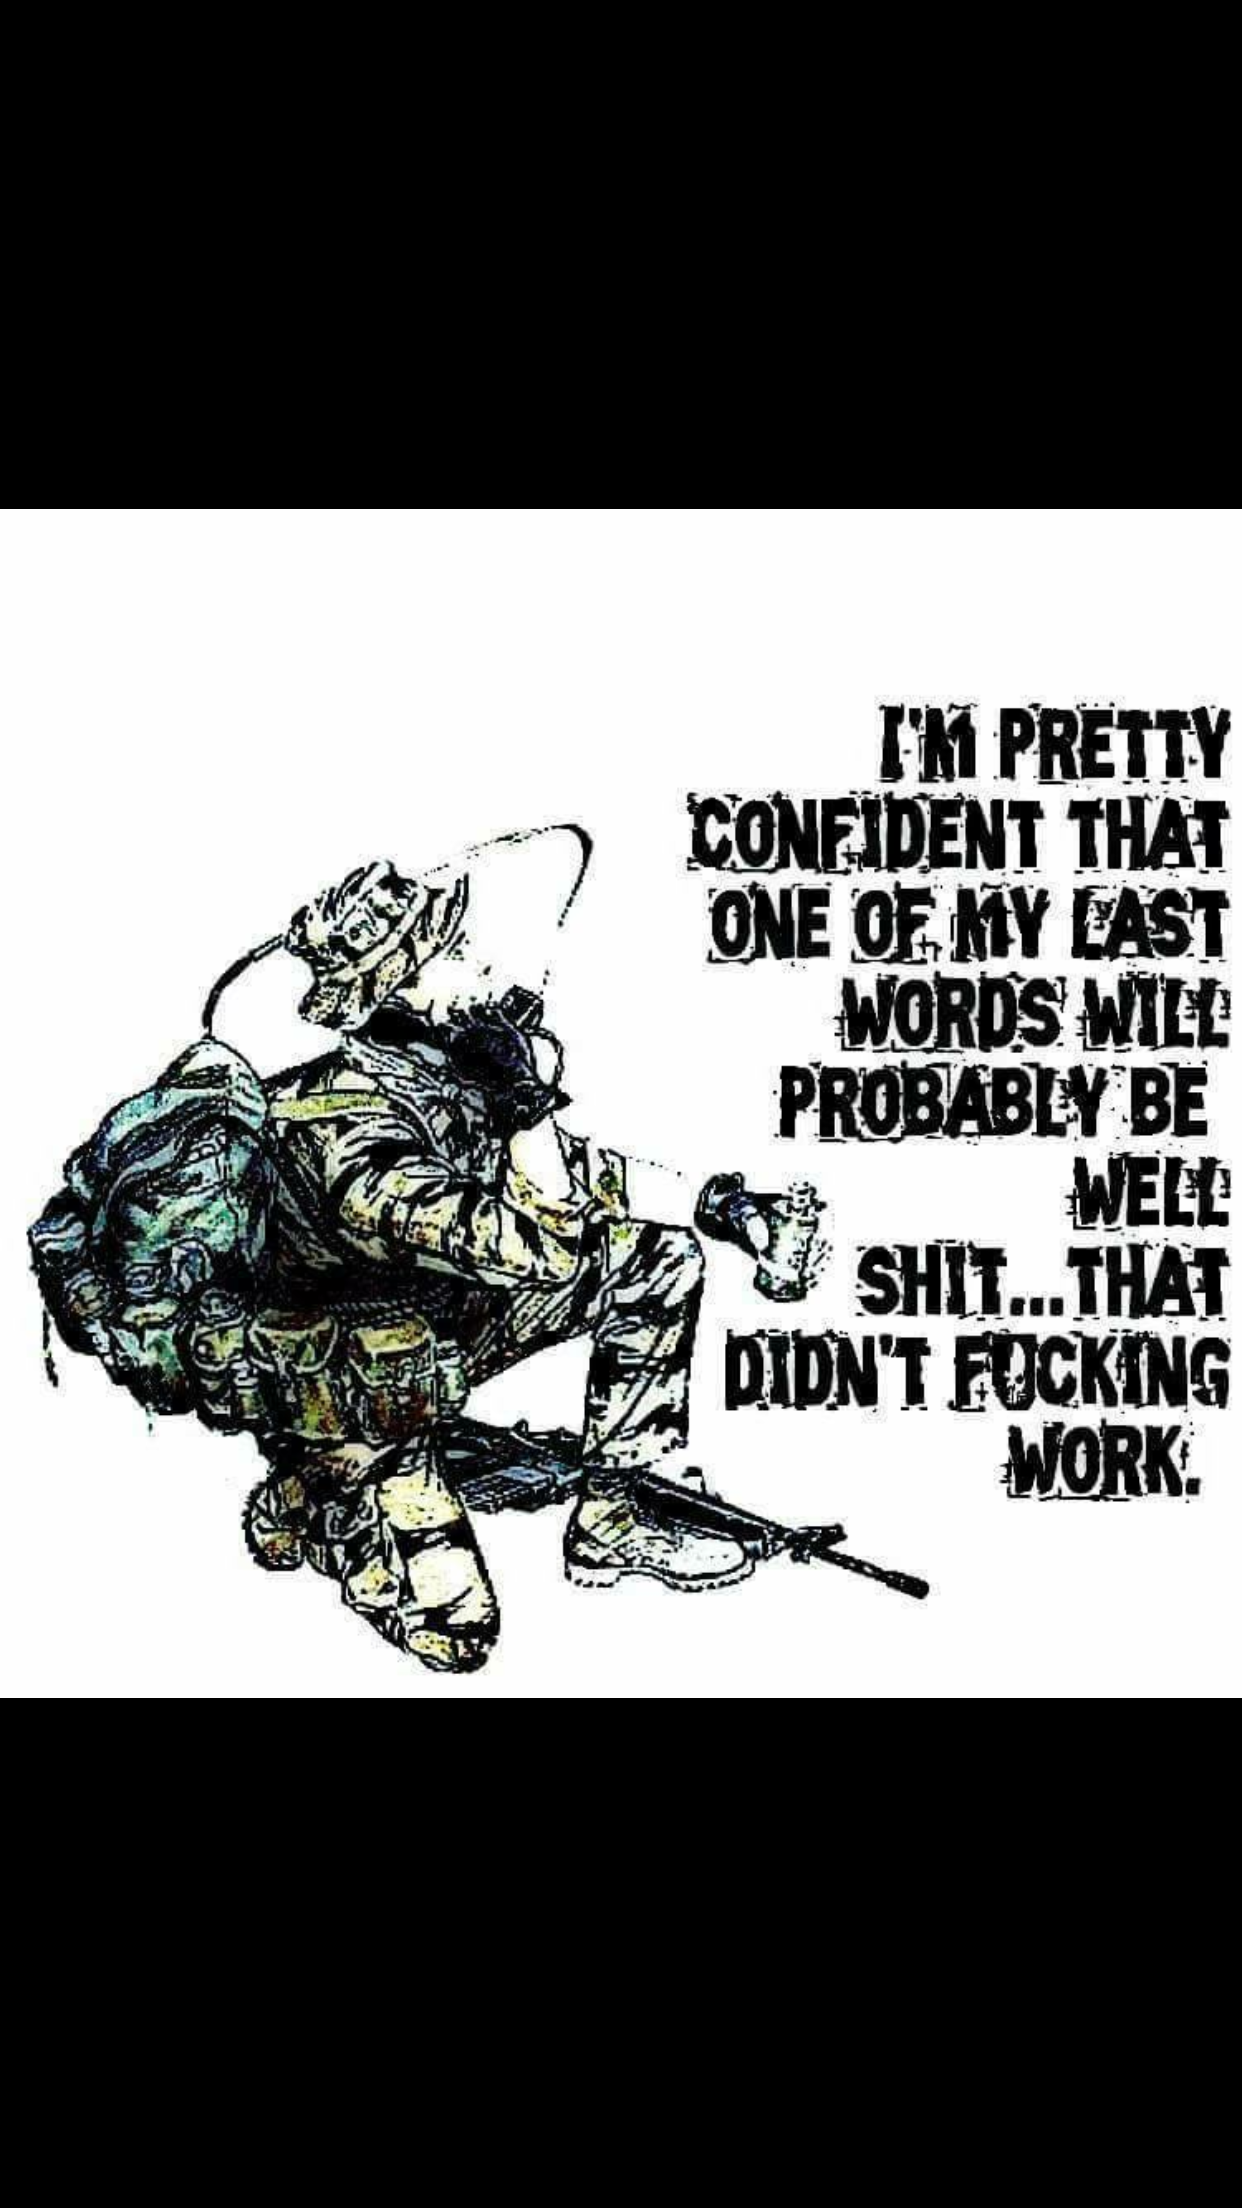 Pin By David Thompson On Truth Military Life Quotes Military Humor Military Quotes